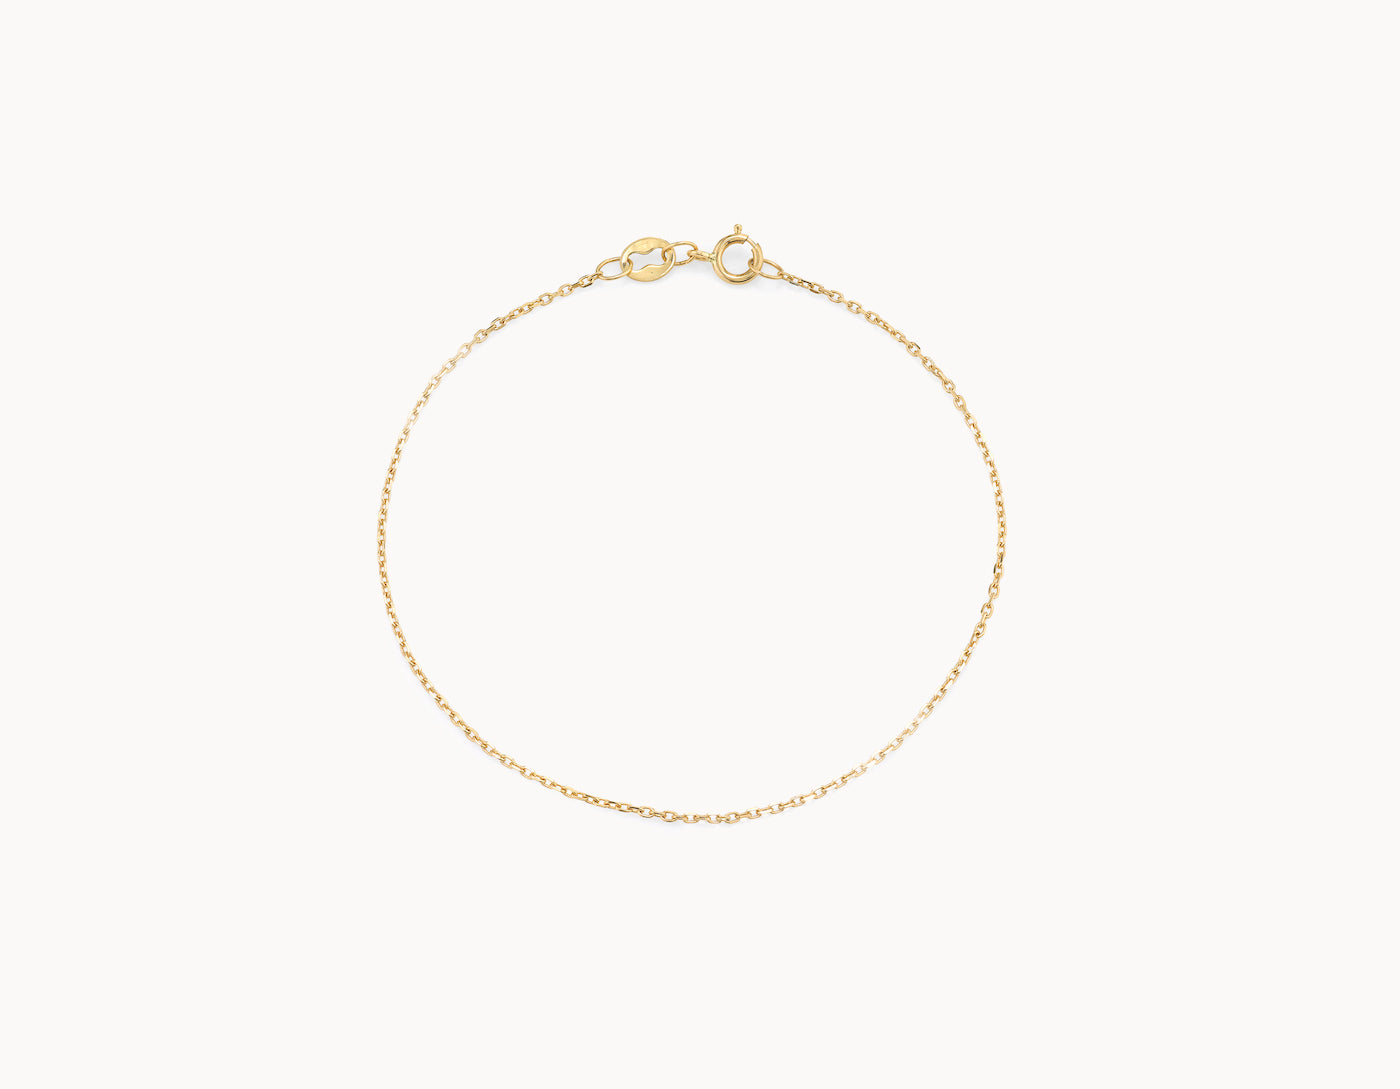 Delicate simple diamond cut Shimmer Chain Bracelet by Vrai, 14K Yellow Gold